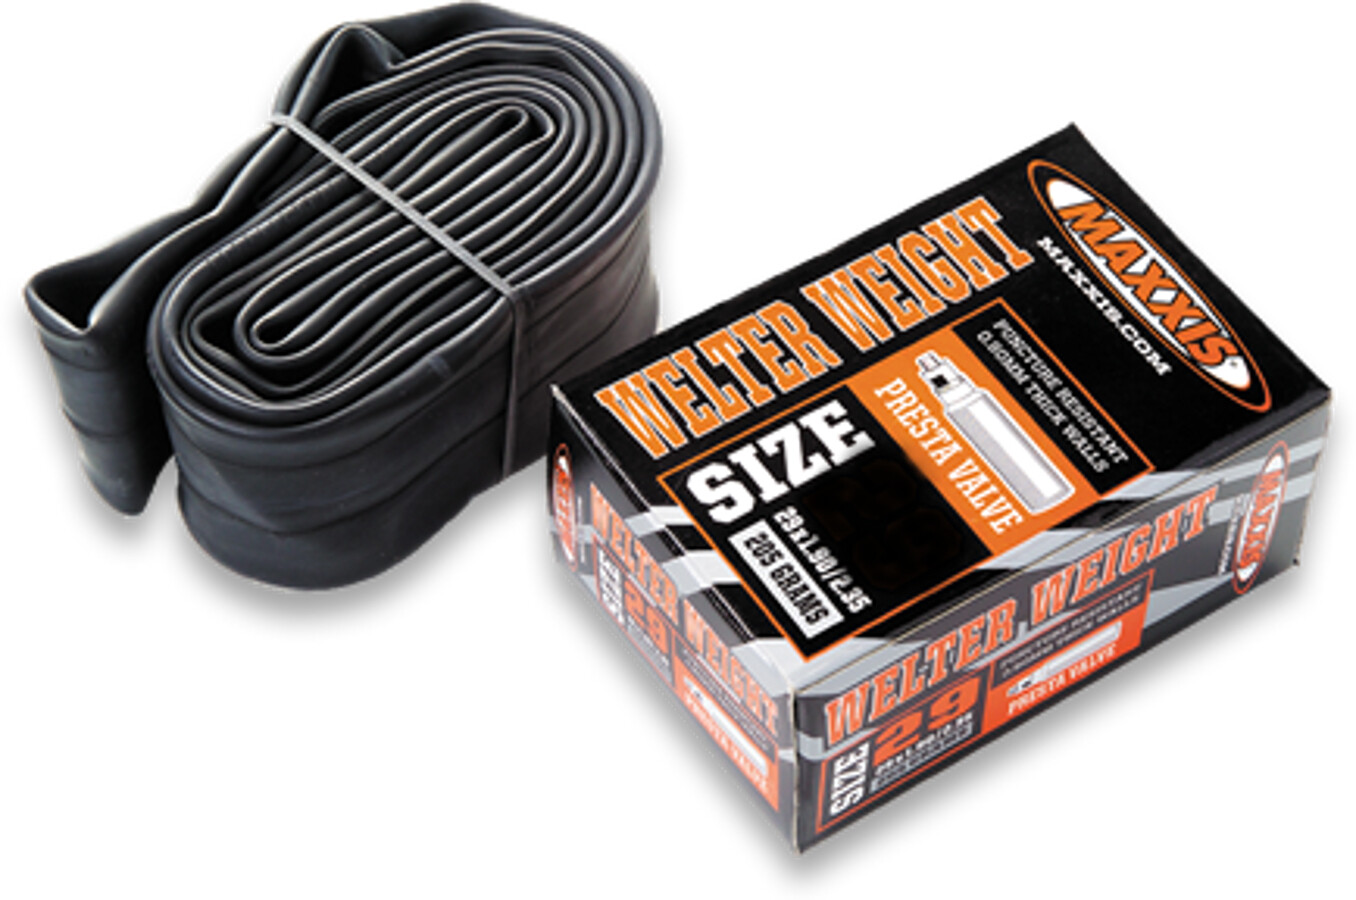 """Maxxis Welter Weight Tube 27.5x2.5/3.0"""", black (2019) 